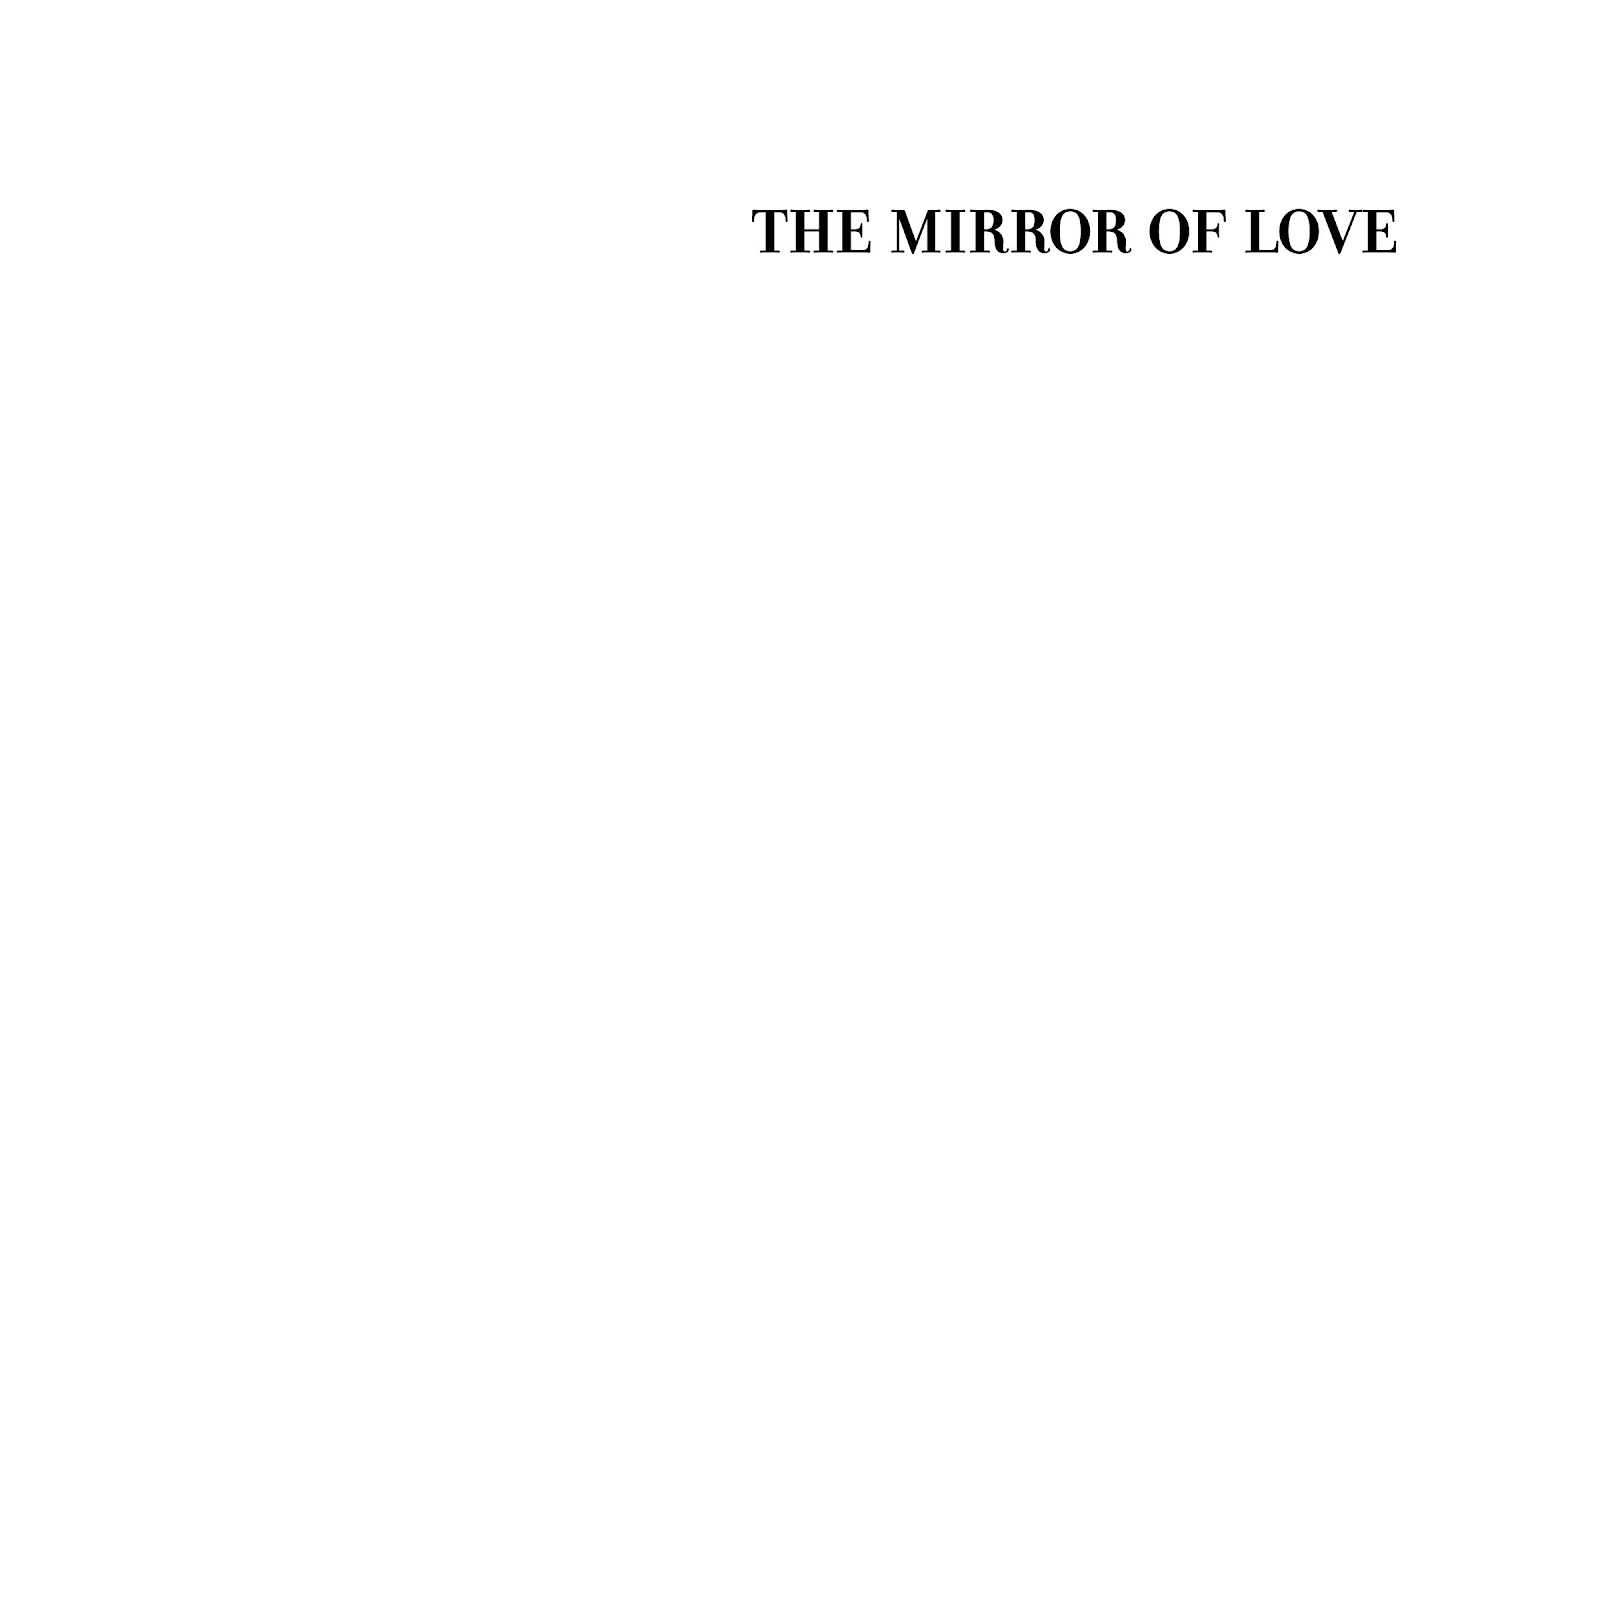 Read online The Mirror of Love comic -  Issue # TPB - 20